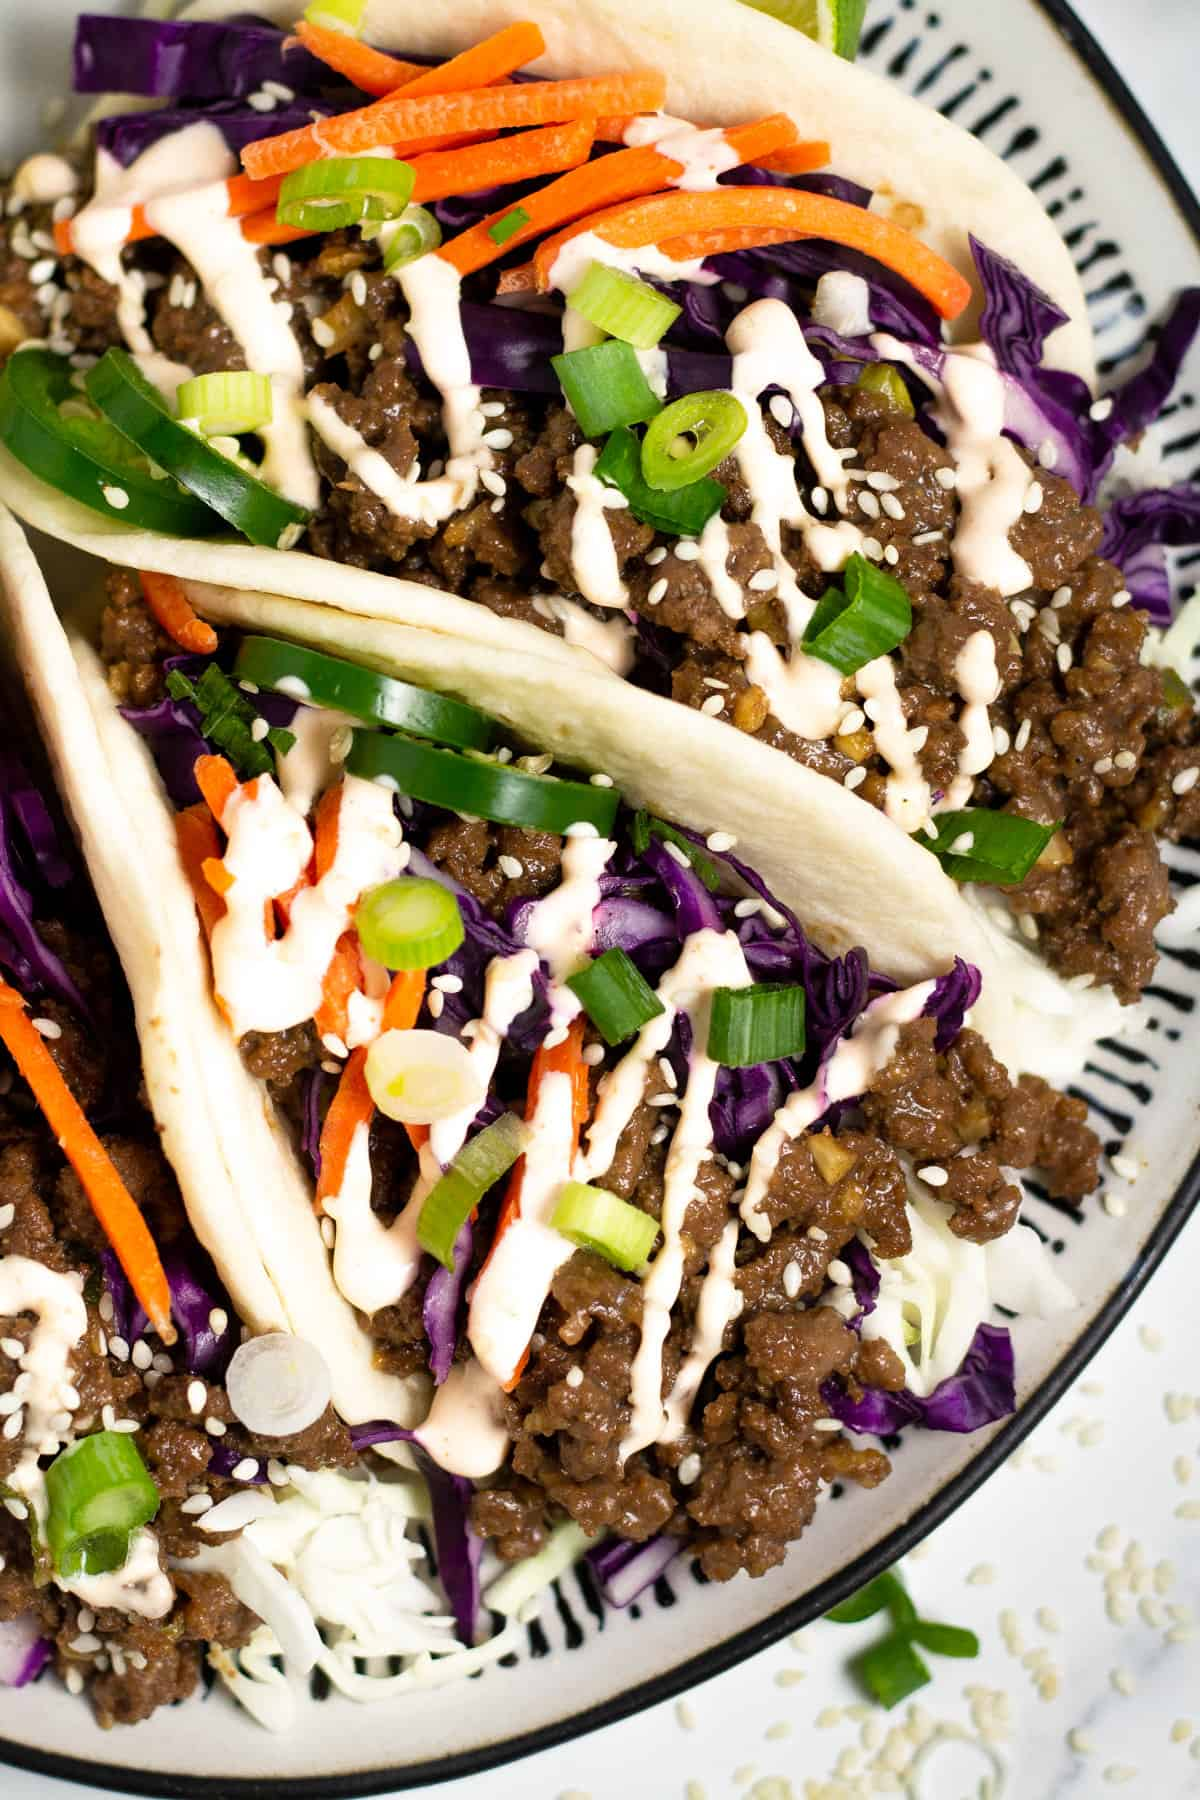 Overhead shot of a black and white plate filled with Korean beef tacos drizzled with spicy mayo.